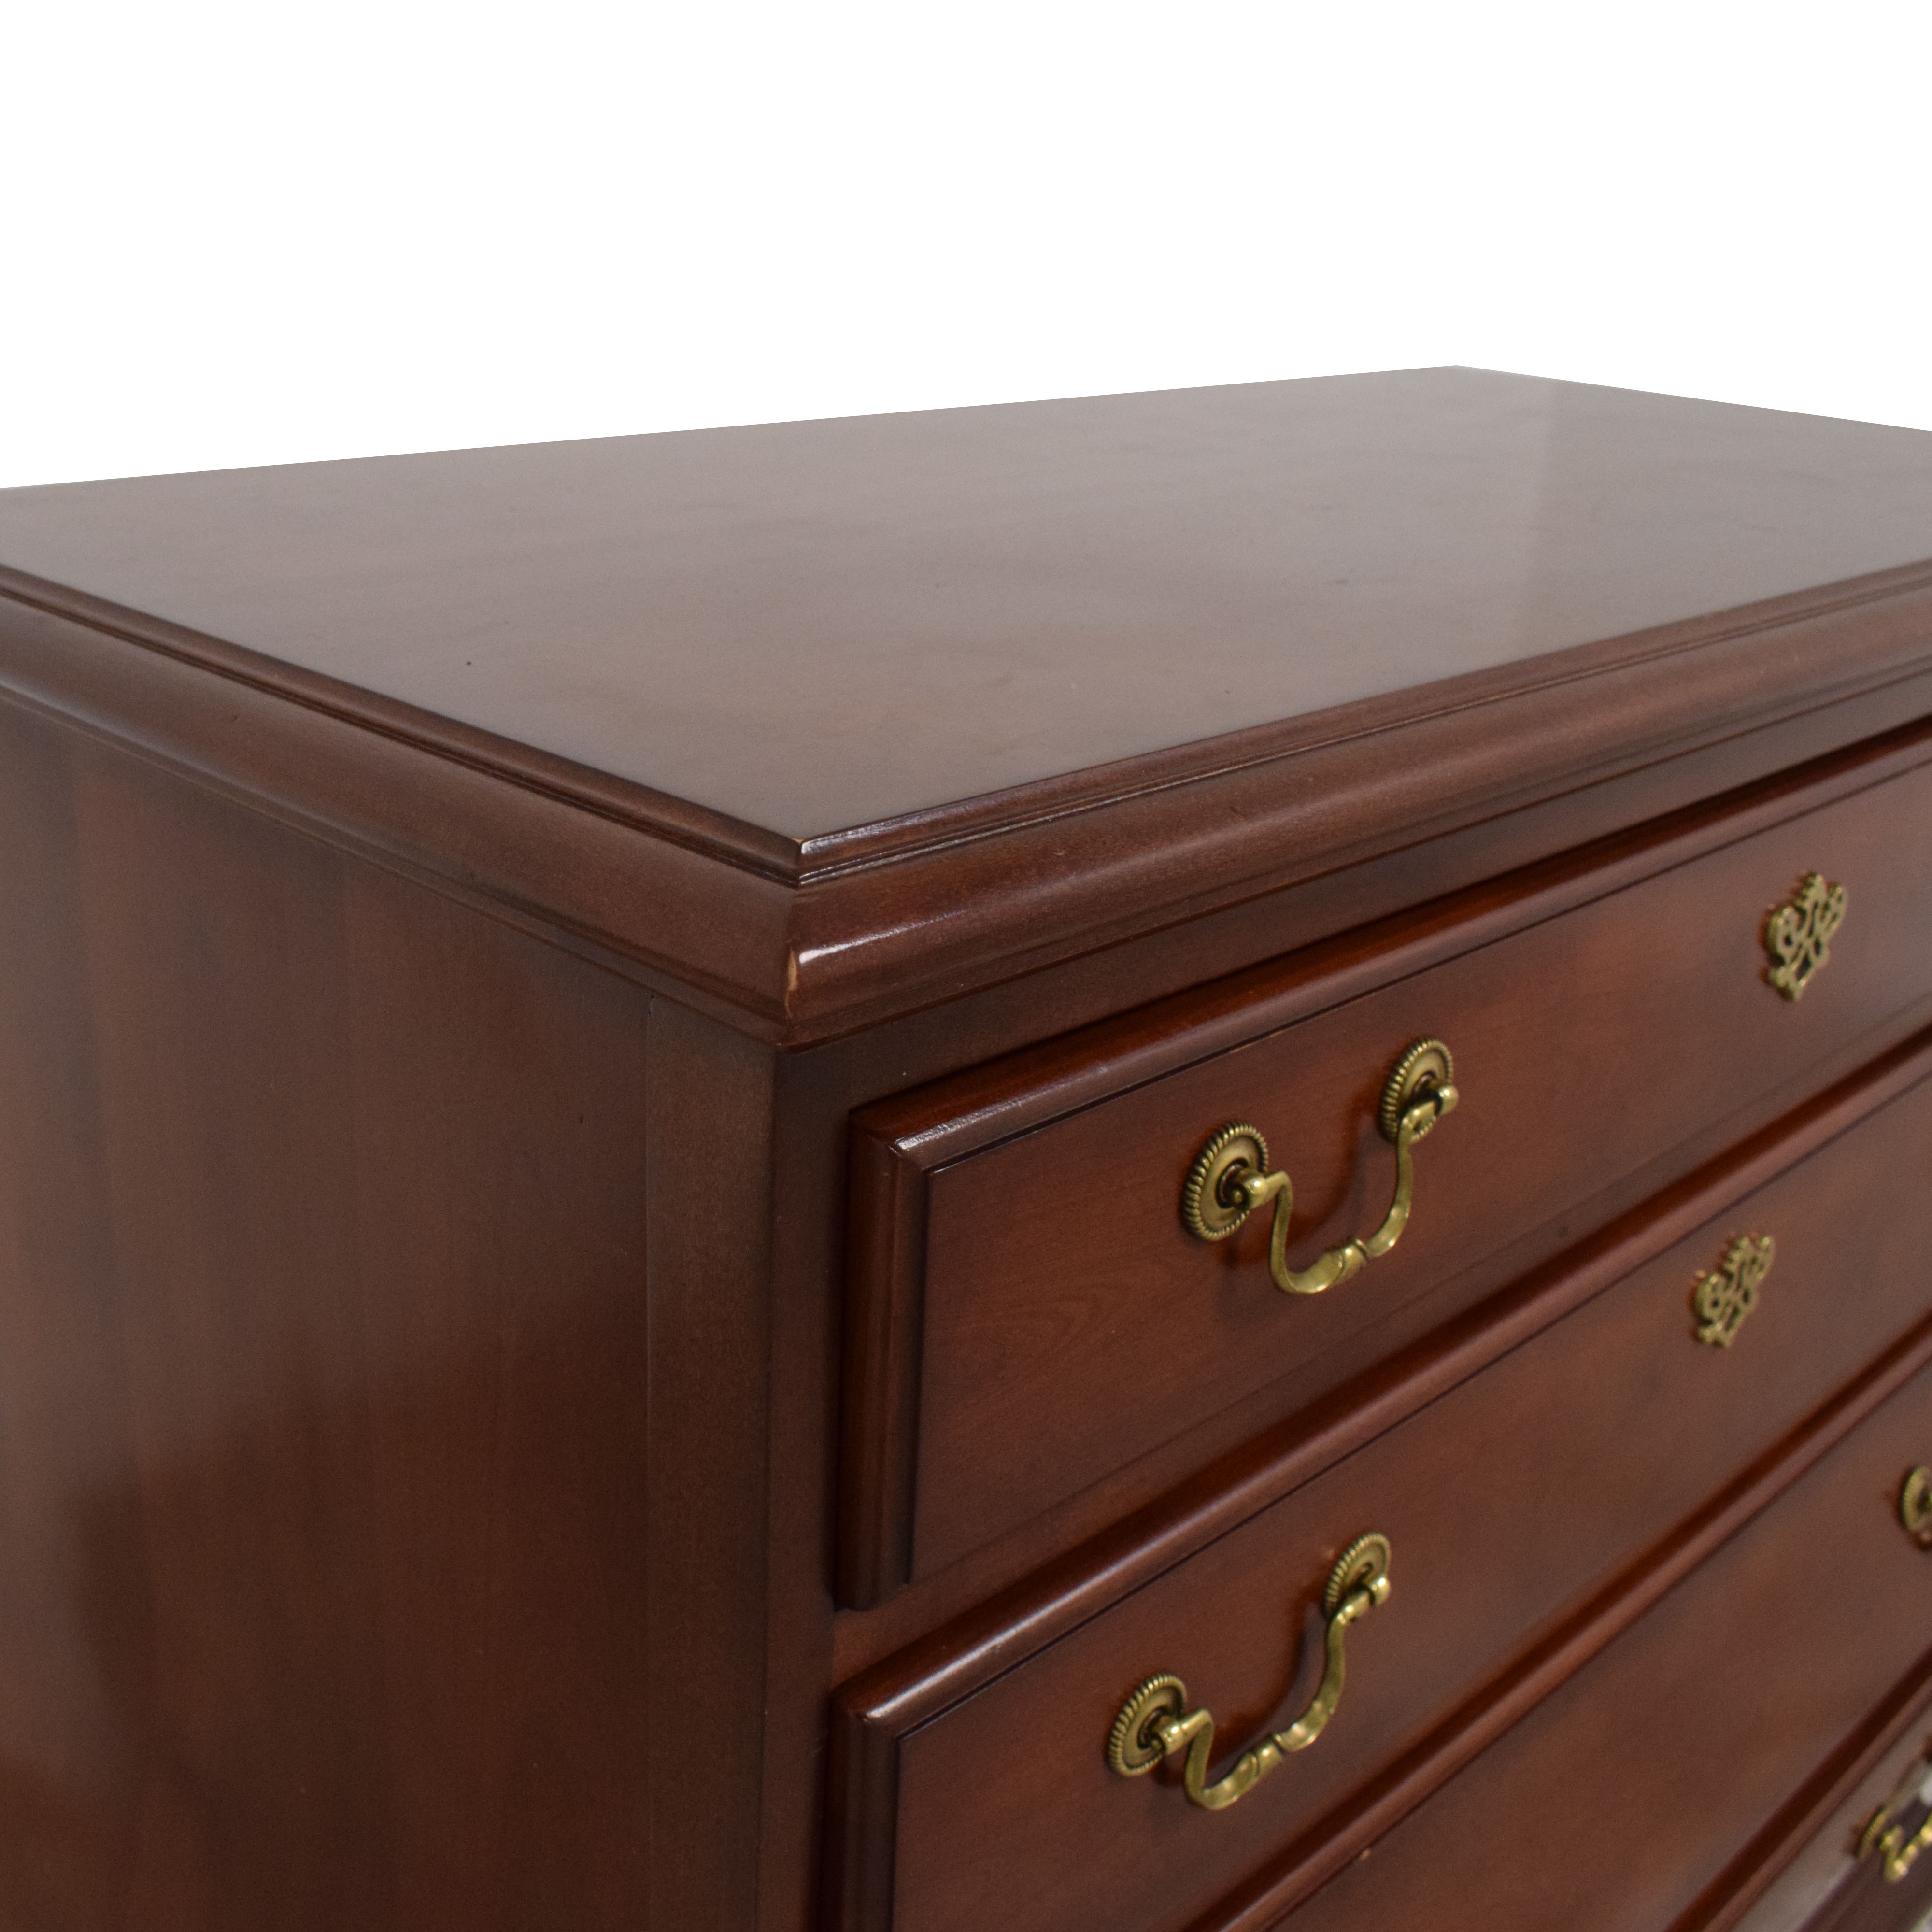 Thomasville Thomasville Collectors Bombay Chest Nightstand ct